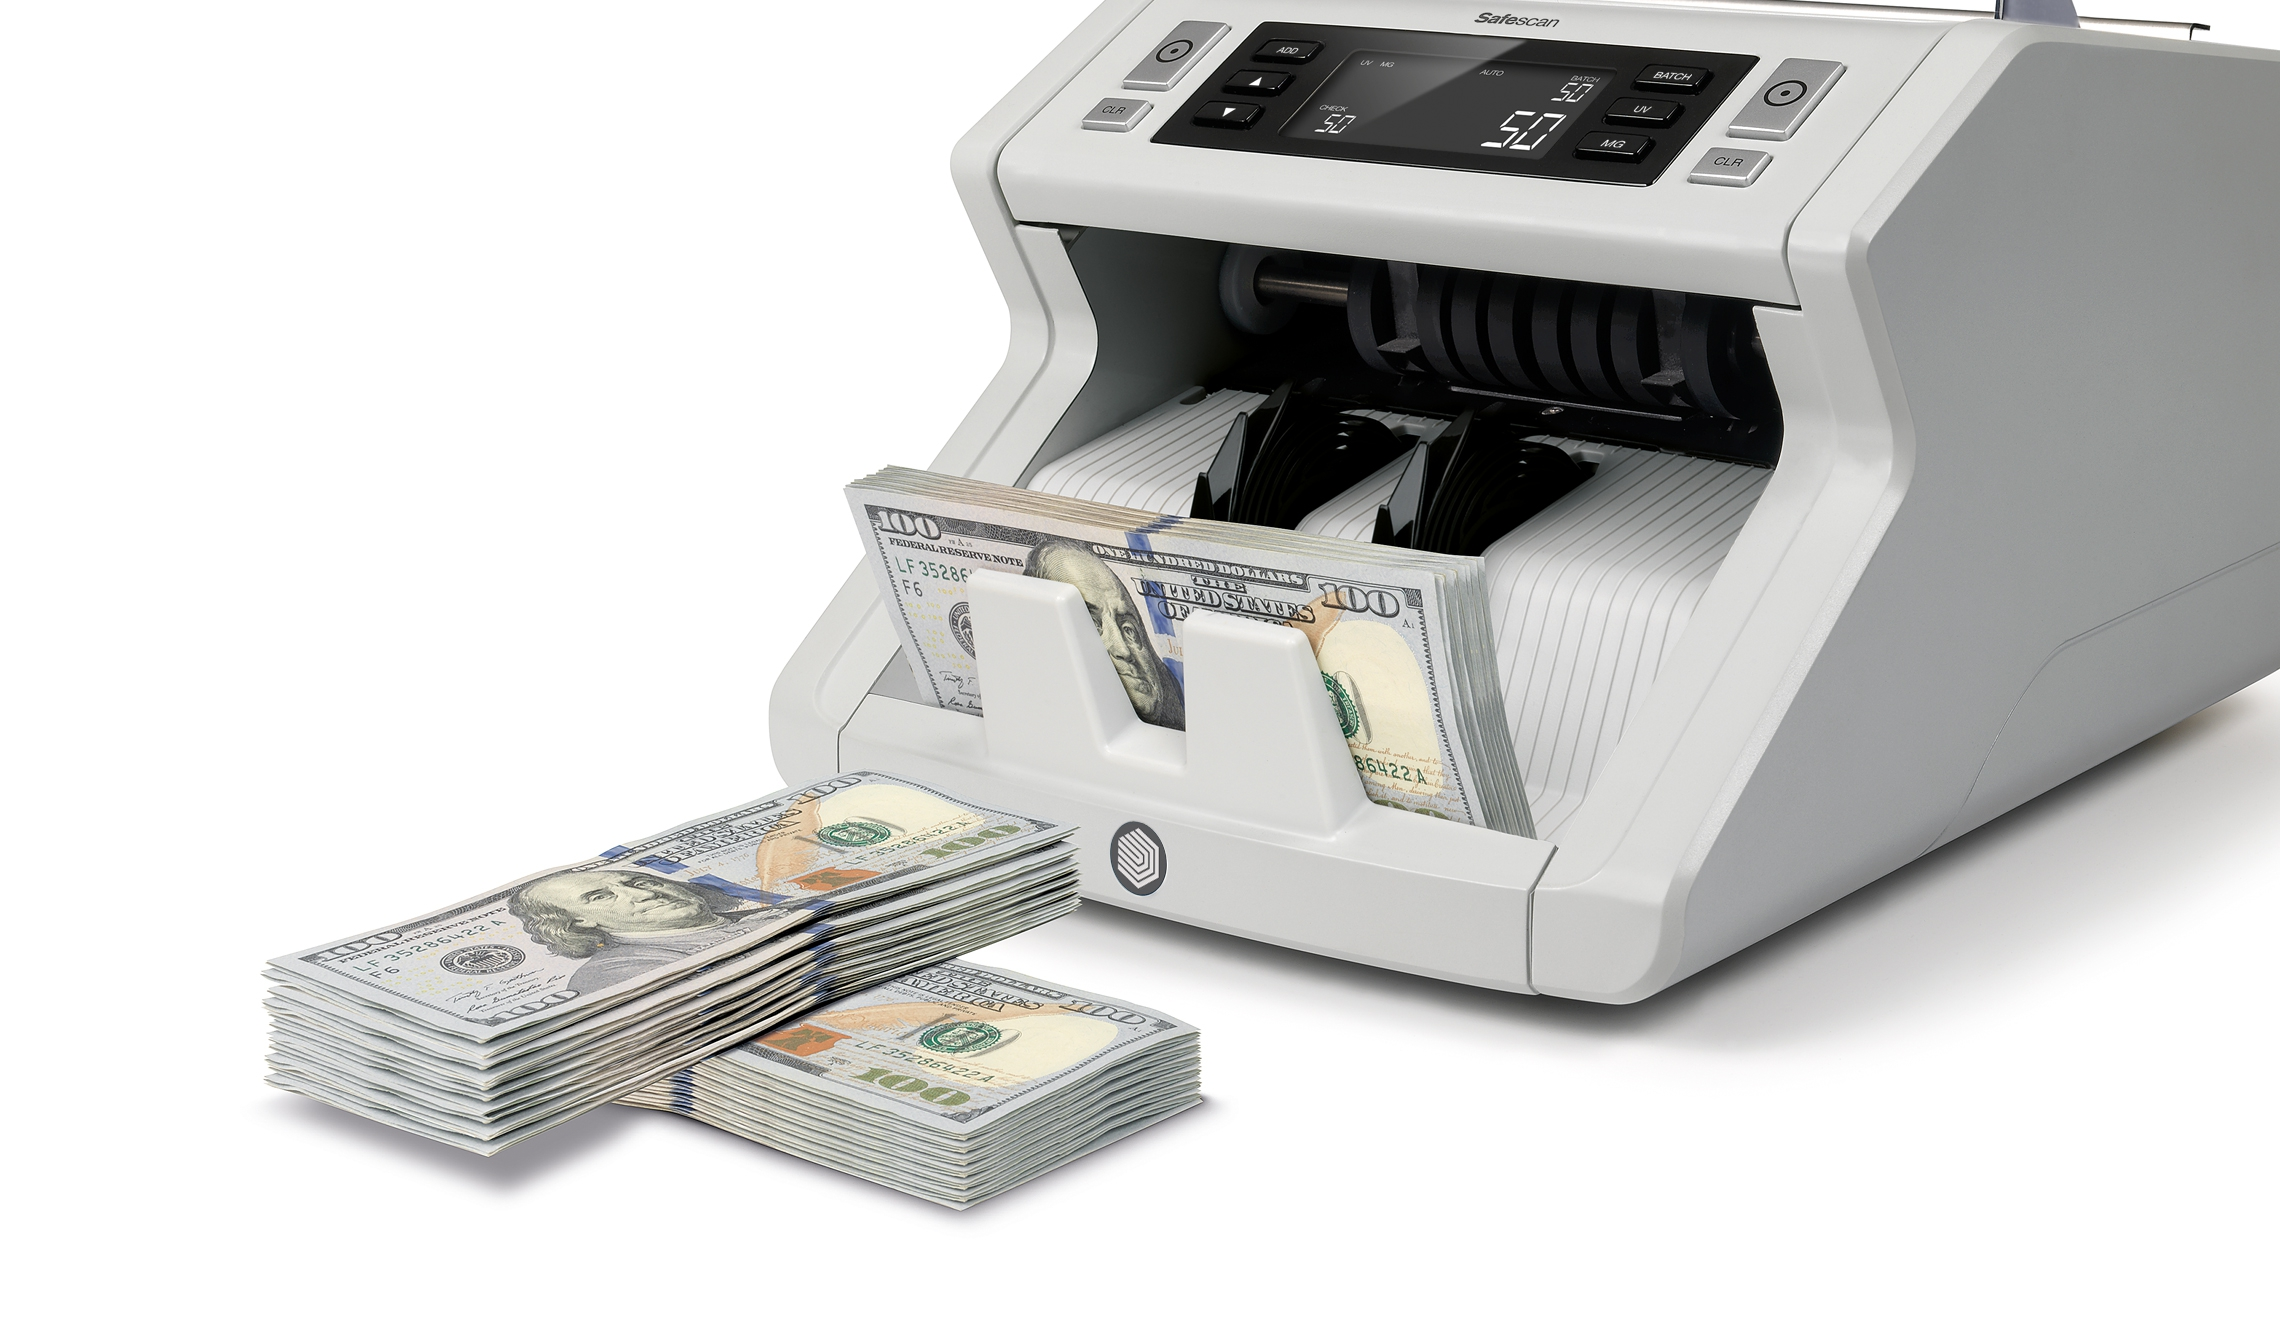 Bill Counter Safescan 2250 With Counterfeit Detection